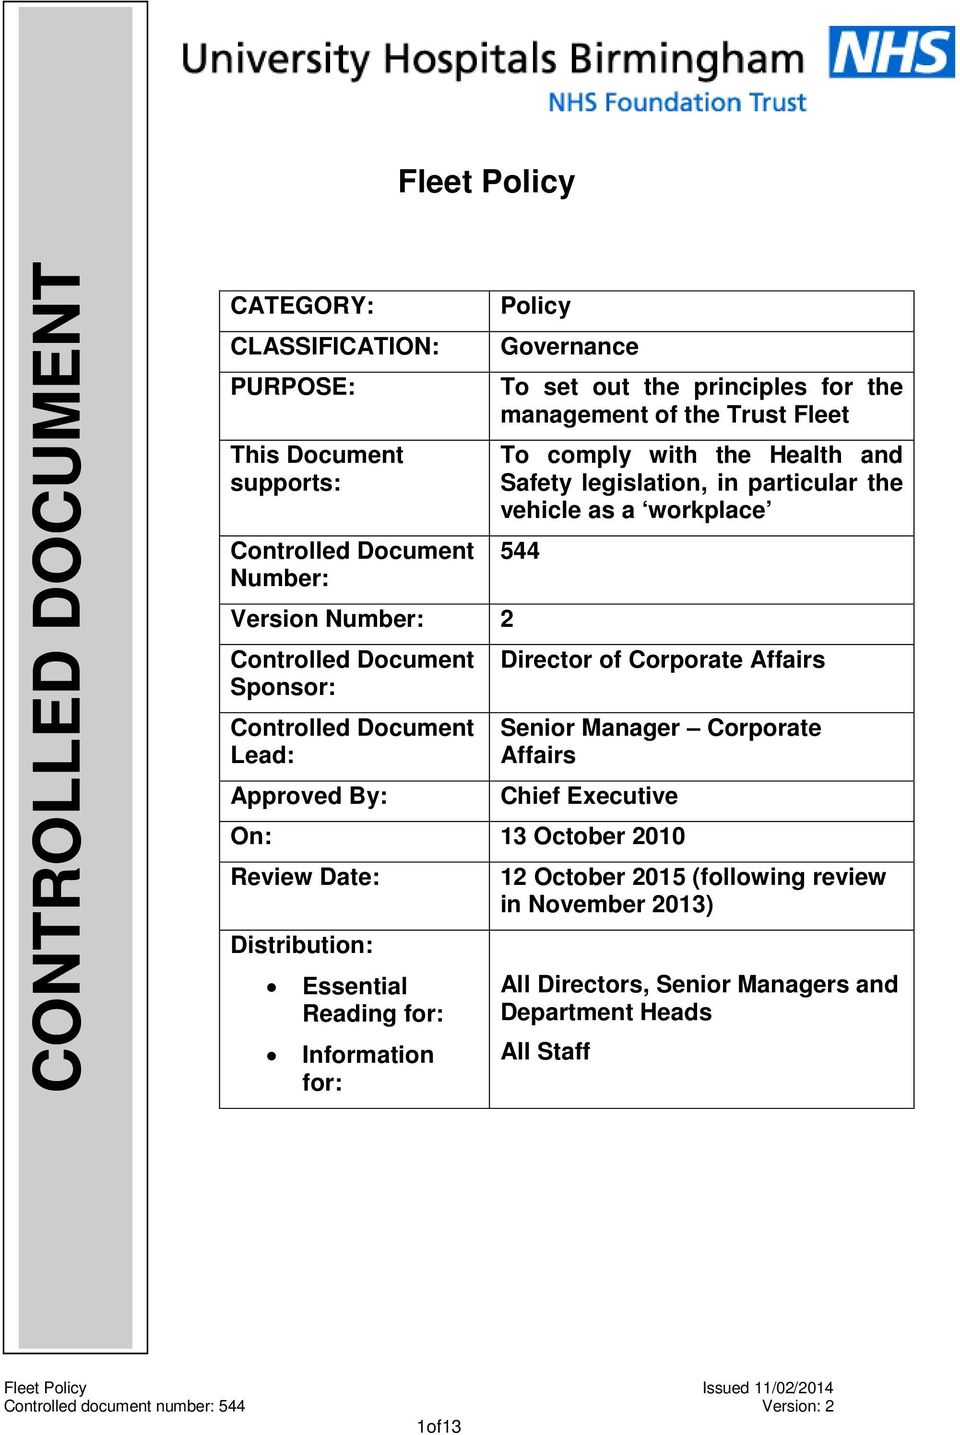 Document Director of Corporate Affairs Sponsor: Controlled Document Lead: Approved By: Senior Manager Corporate Affairs Chief Executive On: 13 October 2010 Review